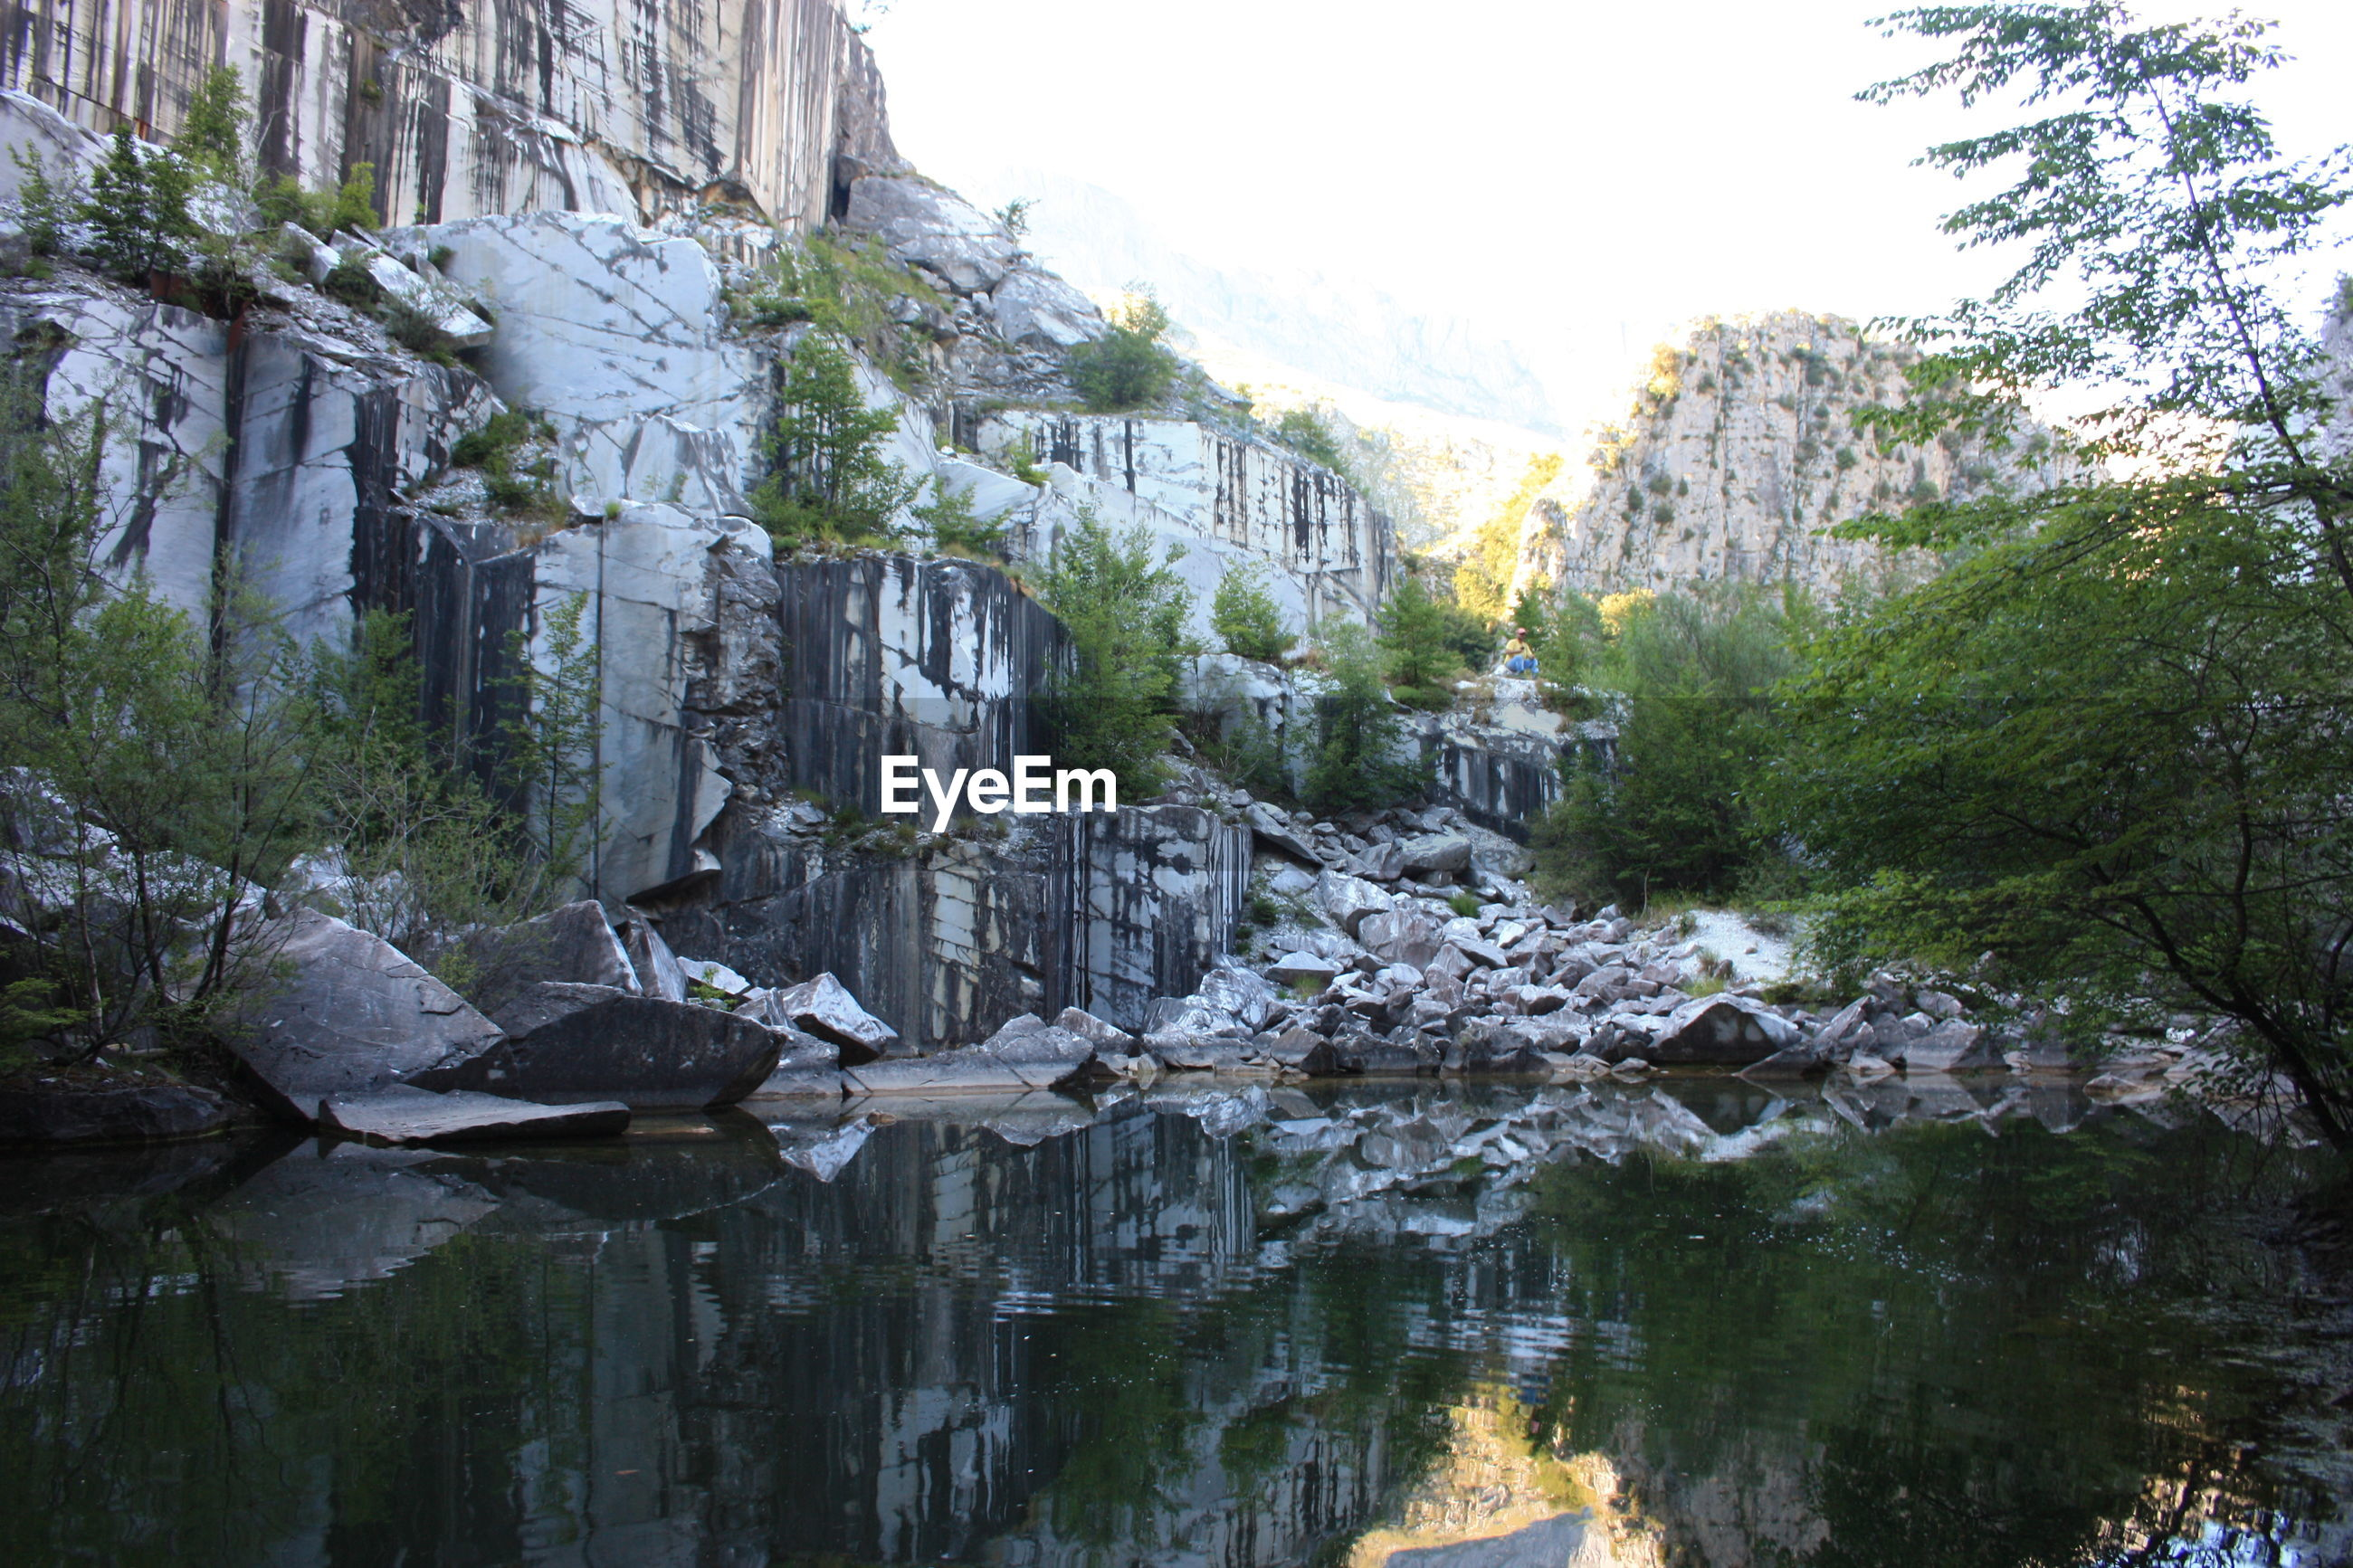 Small natural lake inside a marble quarry in mountain in apuan alps